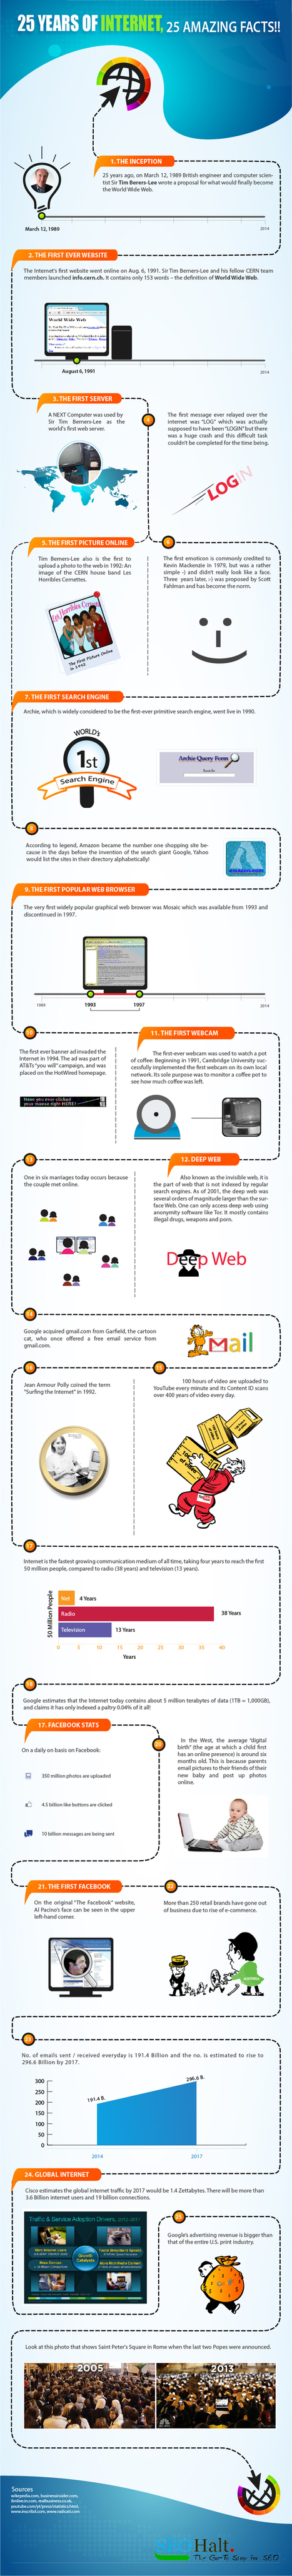 25 Amazing Facts about the Internet [Infographic] | Branding | Scoop.it